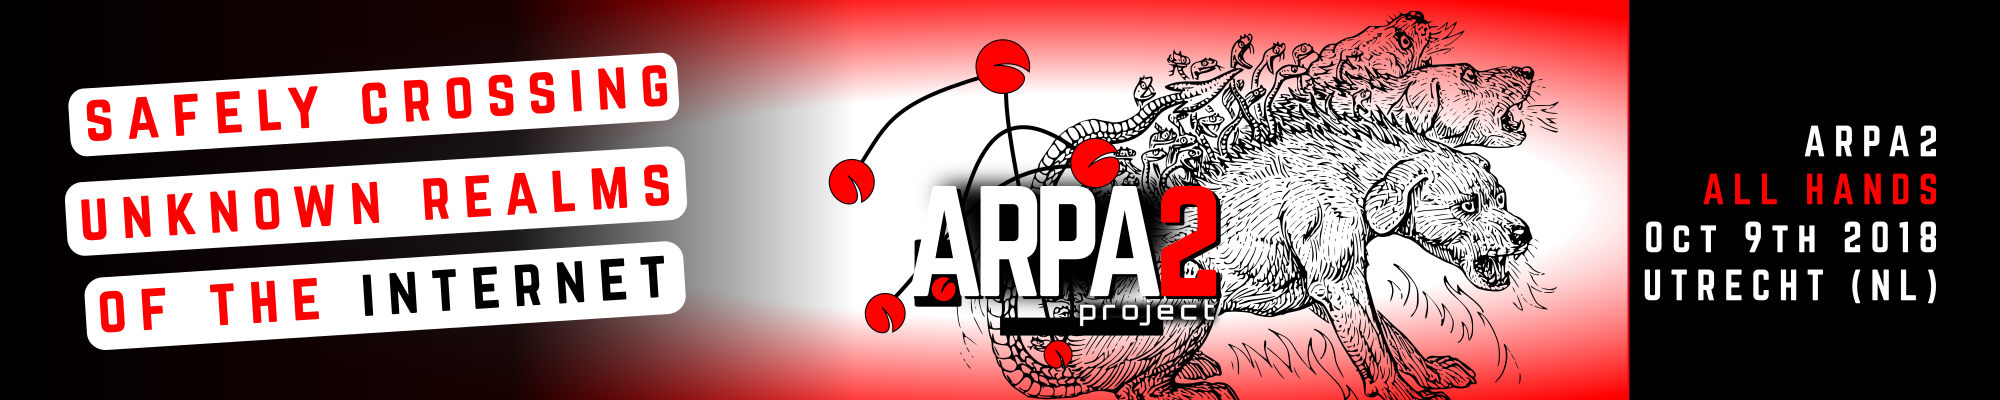 ARPA2 All Hands on October 9th 2018